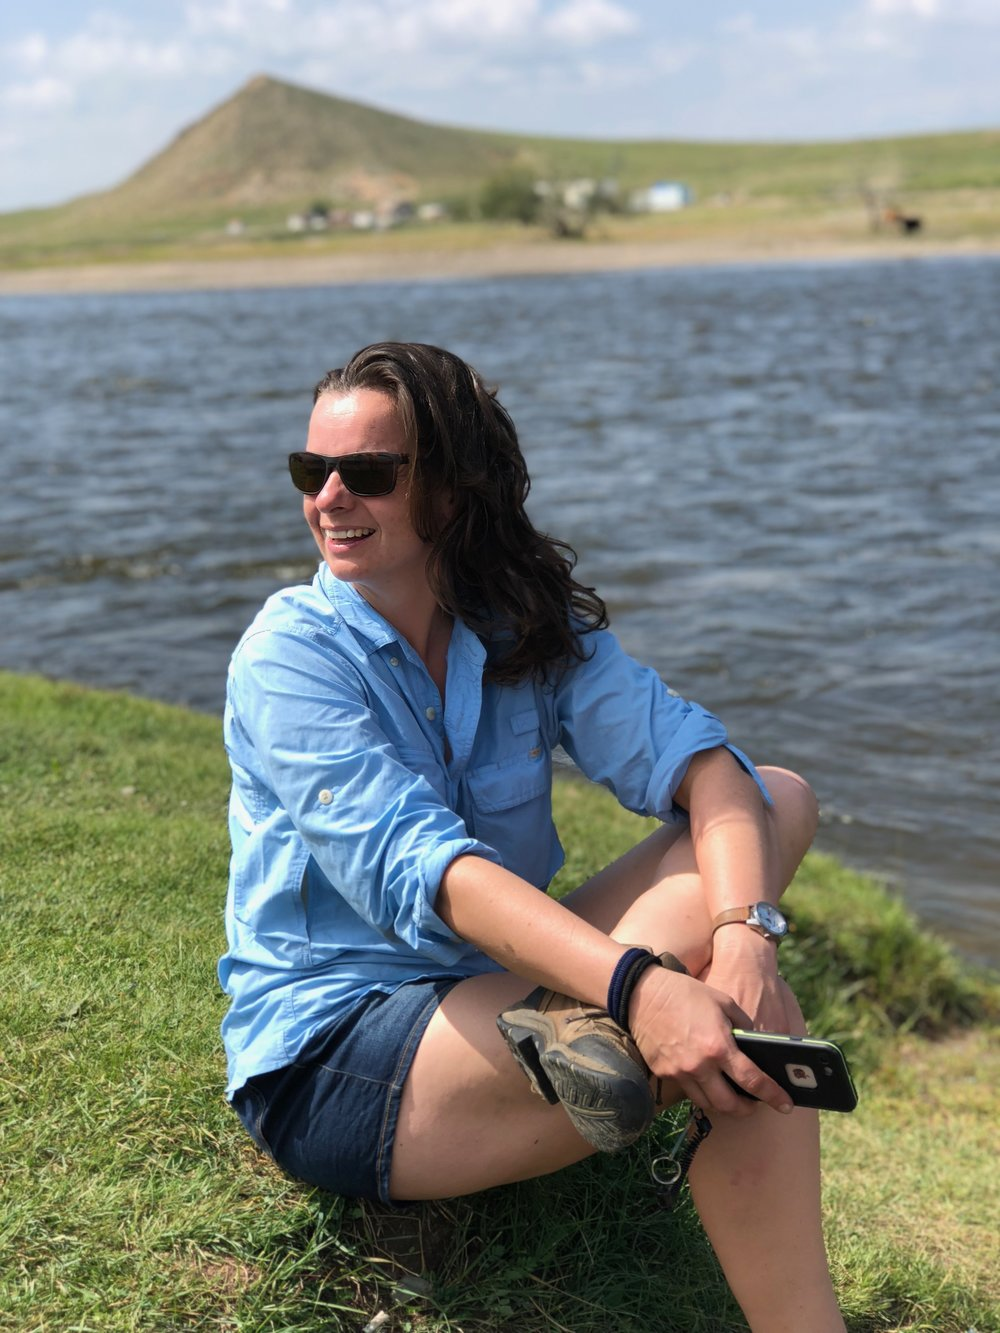 Ruth enjoying a pit stop by the river on the long trip from UB to base camp.